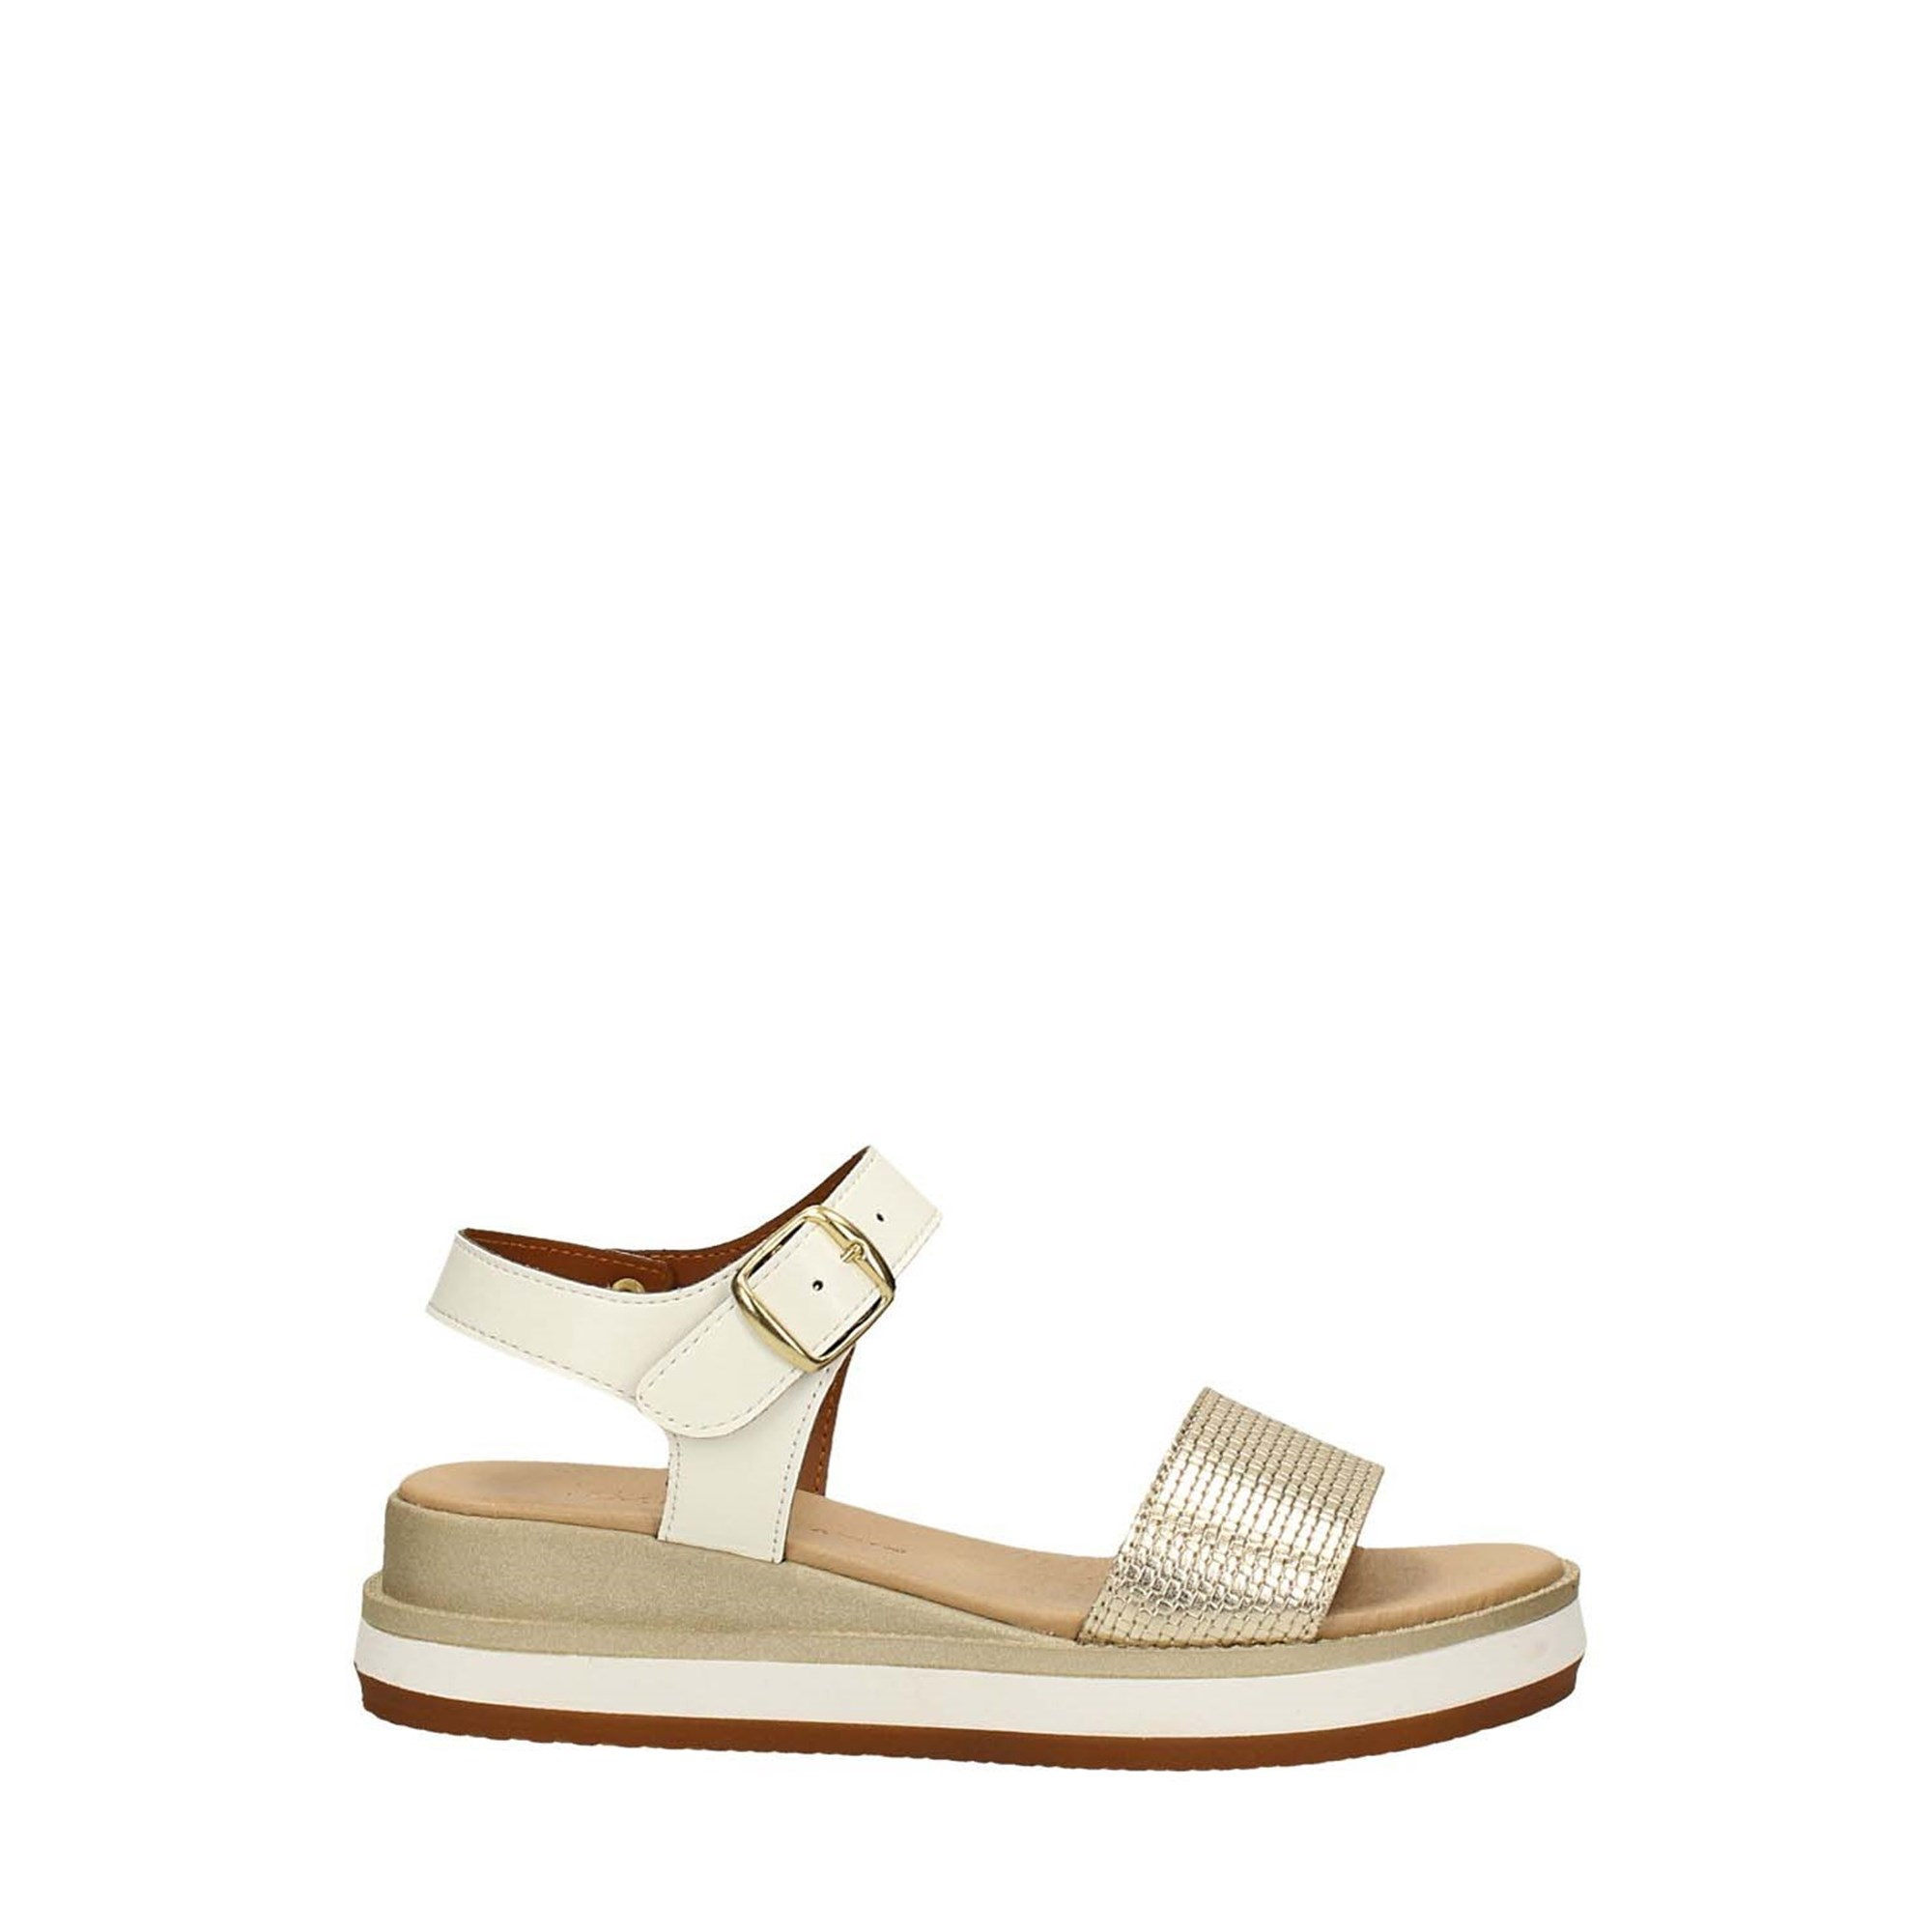 Tata Italia Shoes Woman Sandali 433-6155 R